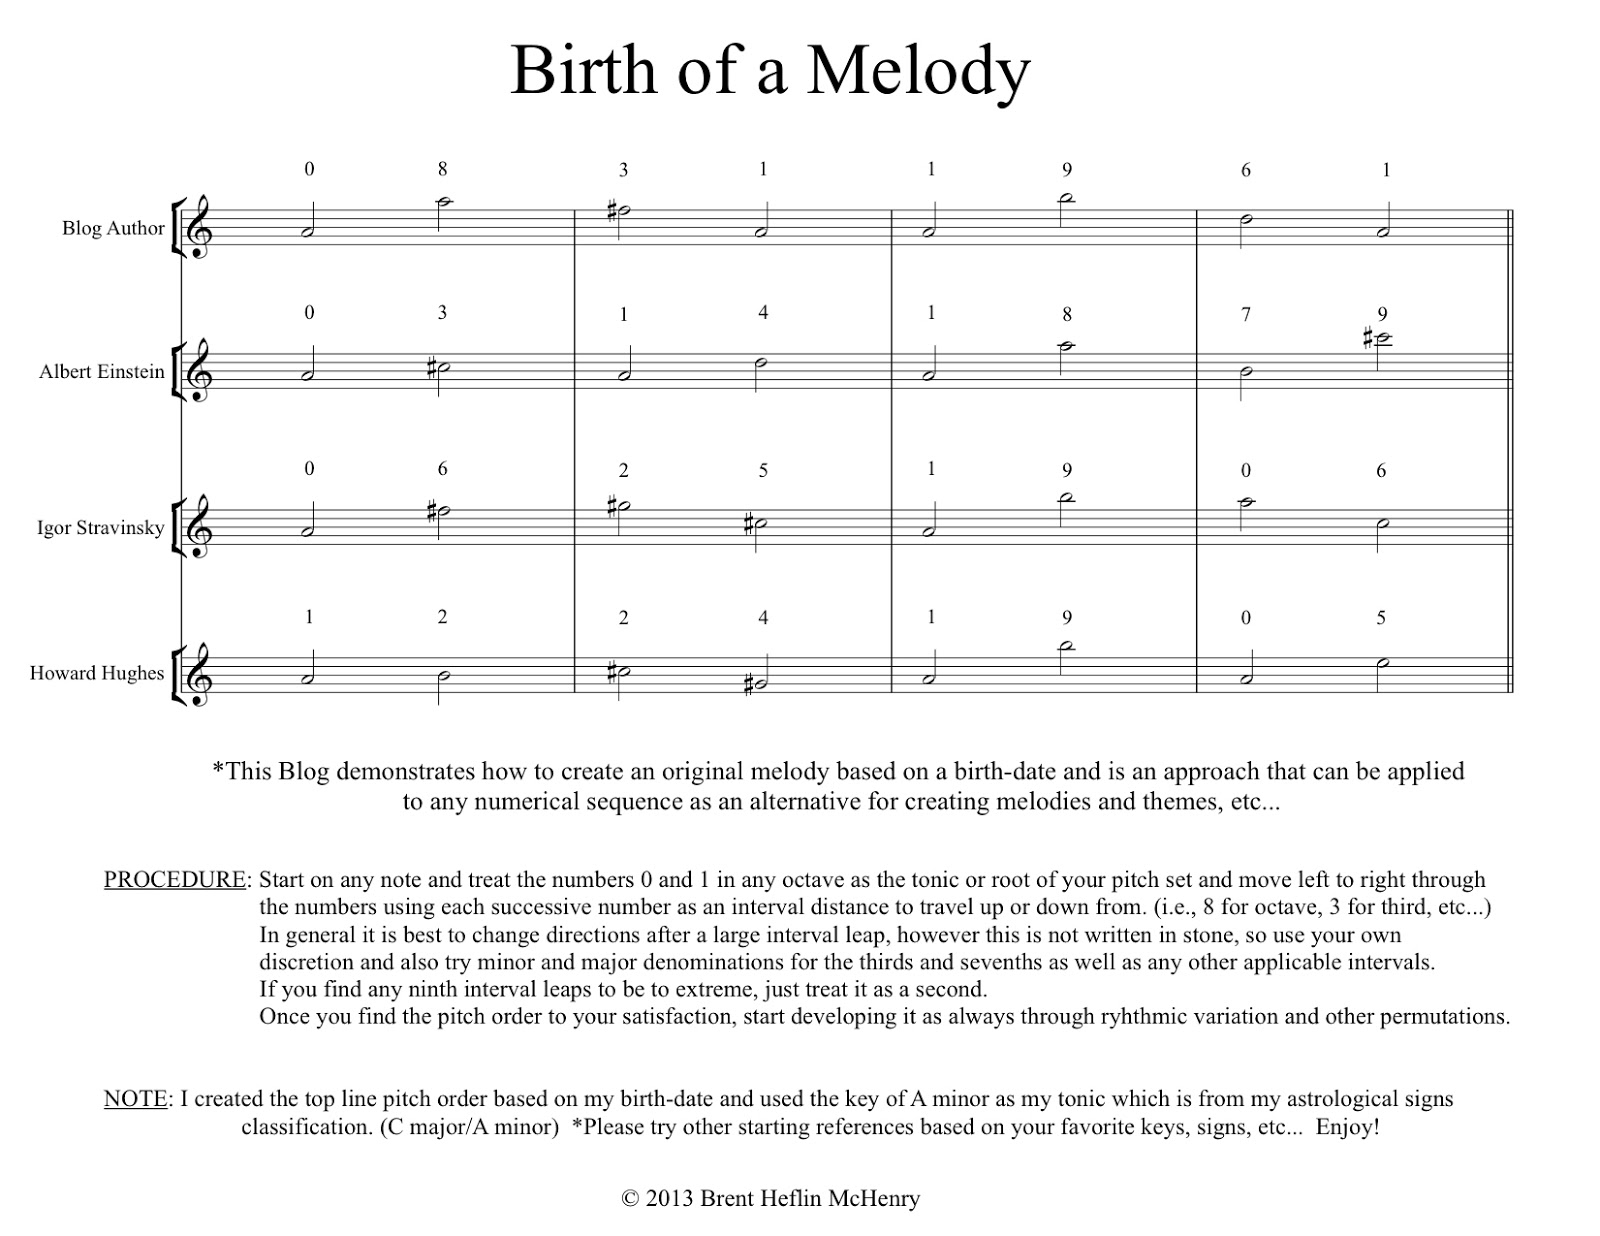 how to create a melody